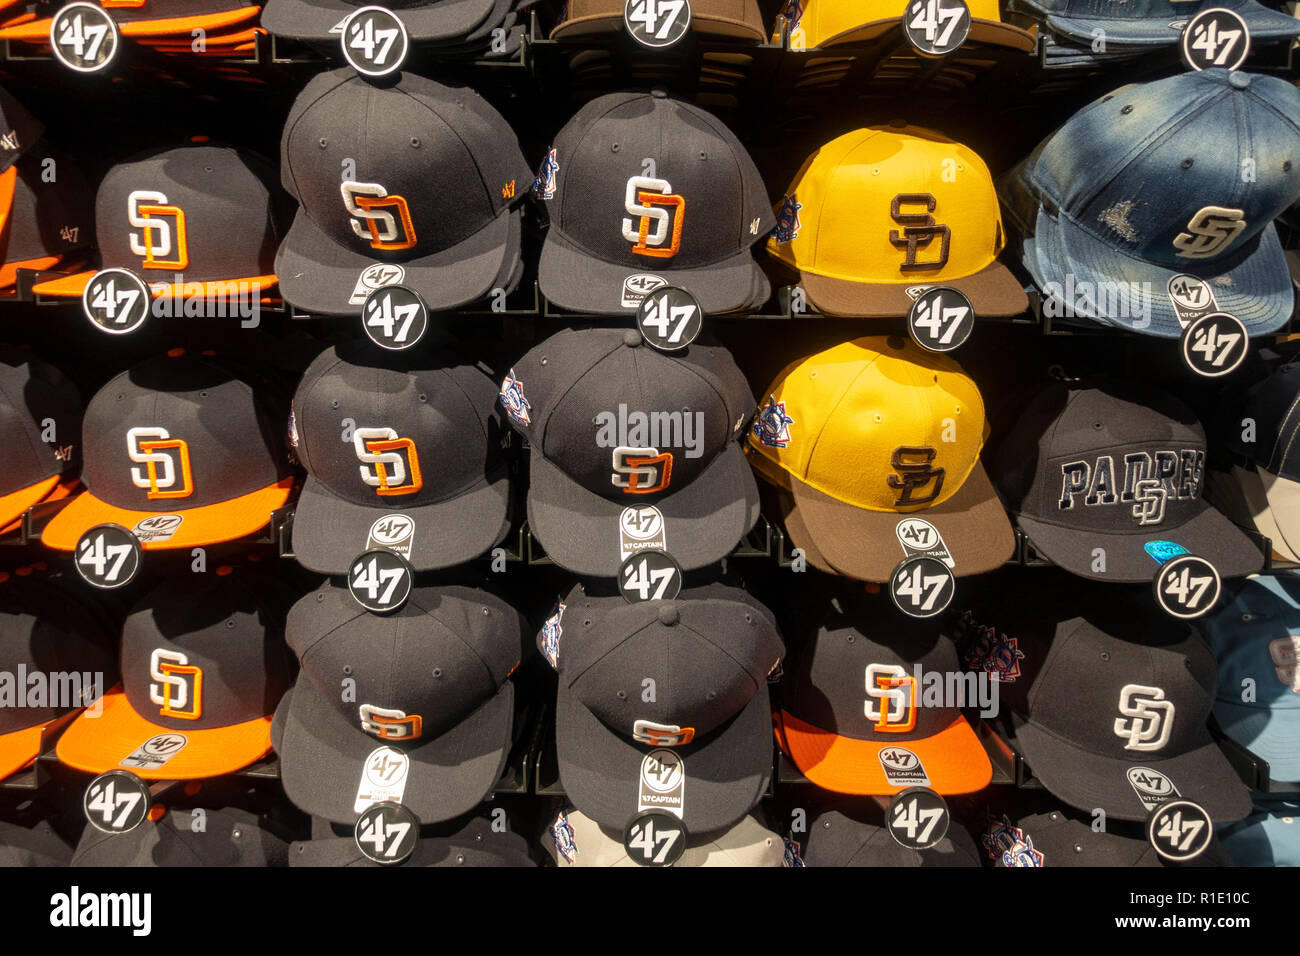 Baseball Hats Shop Stock Photos   Baseball Hats Shop Stock Images ... 097ed187525d